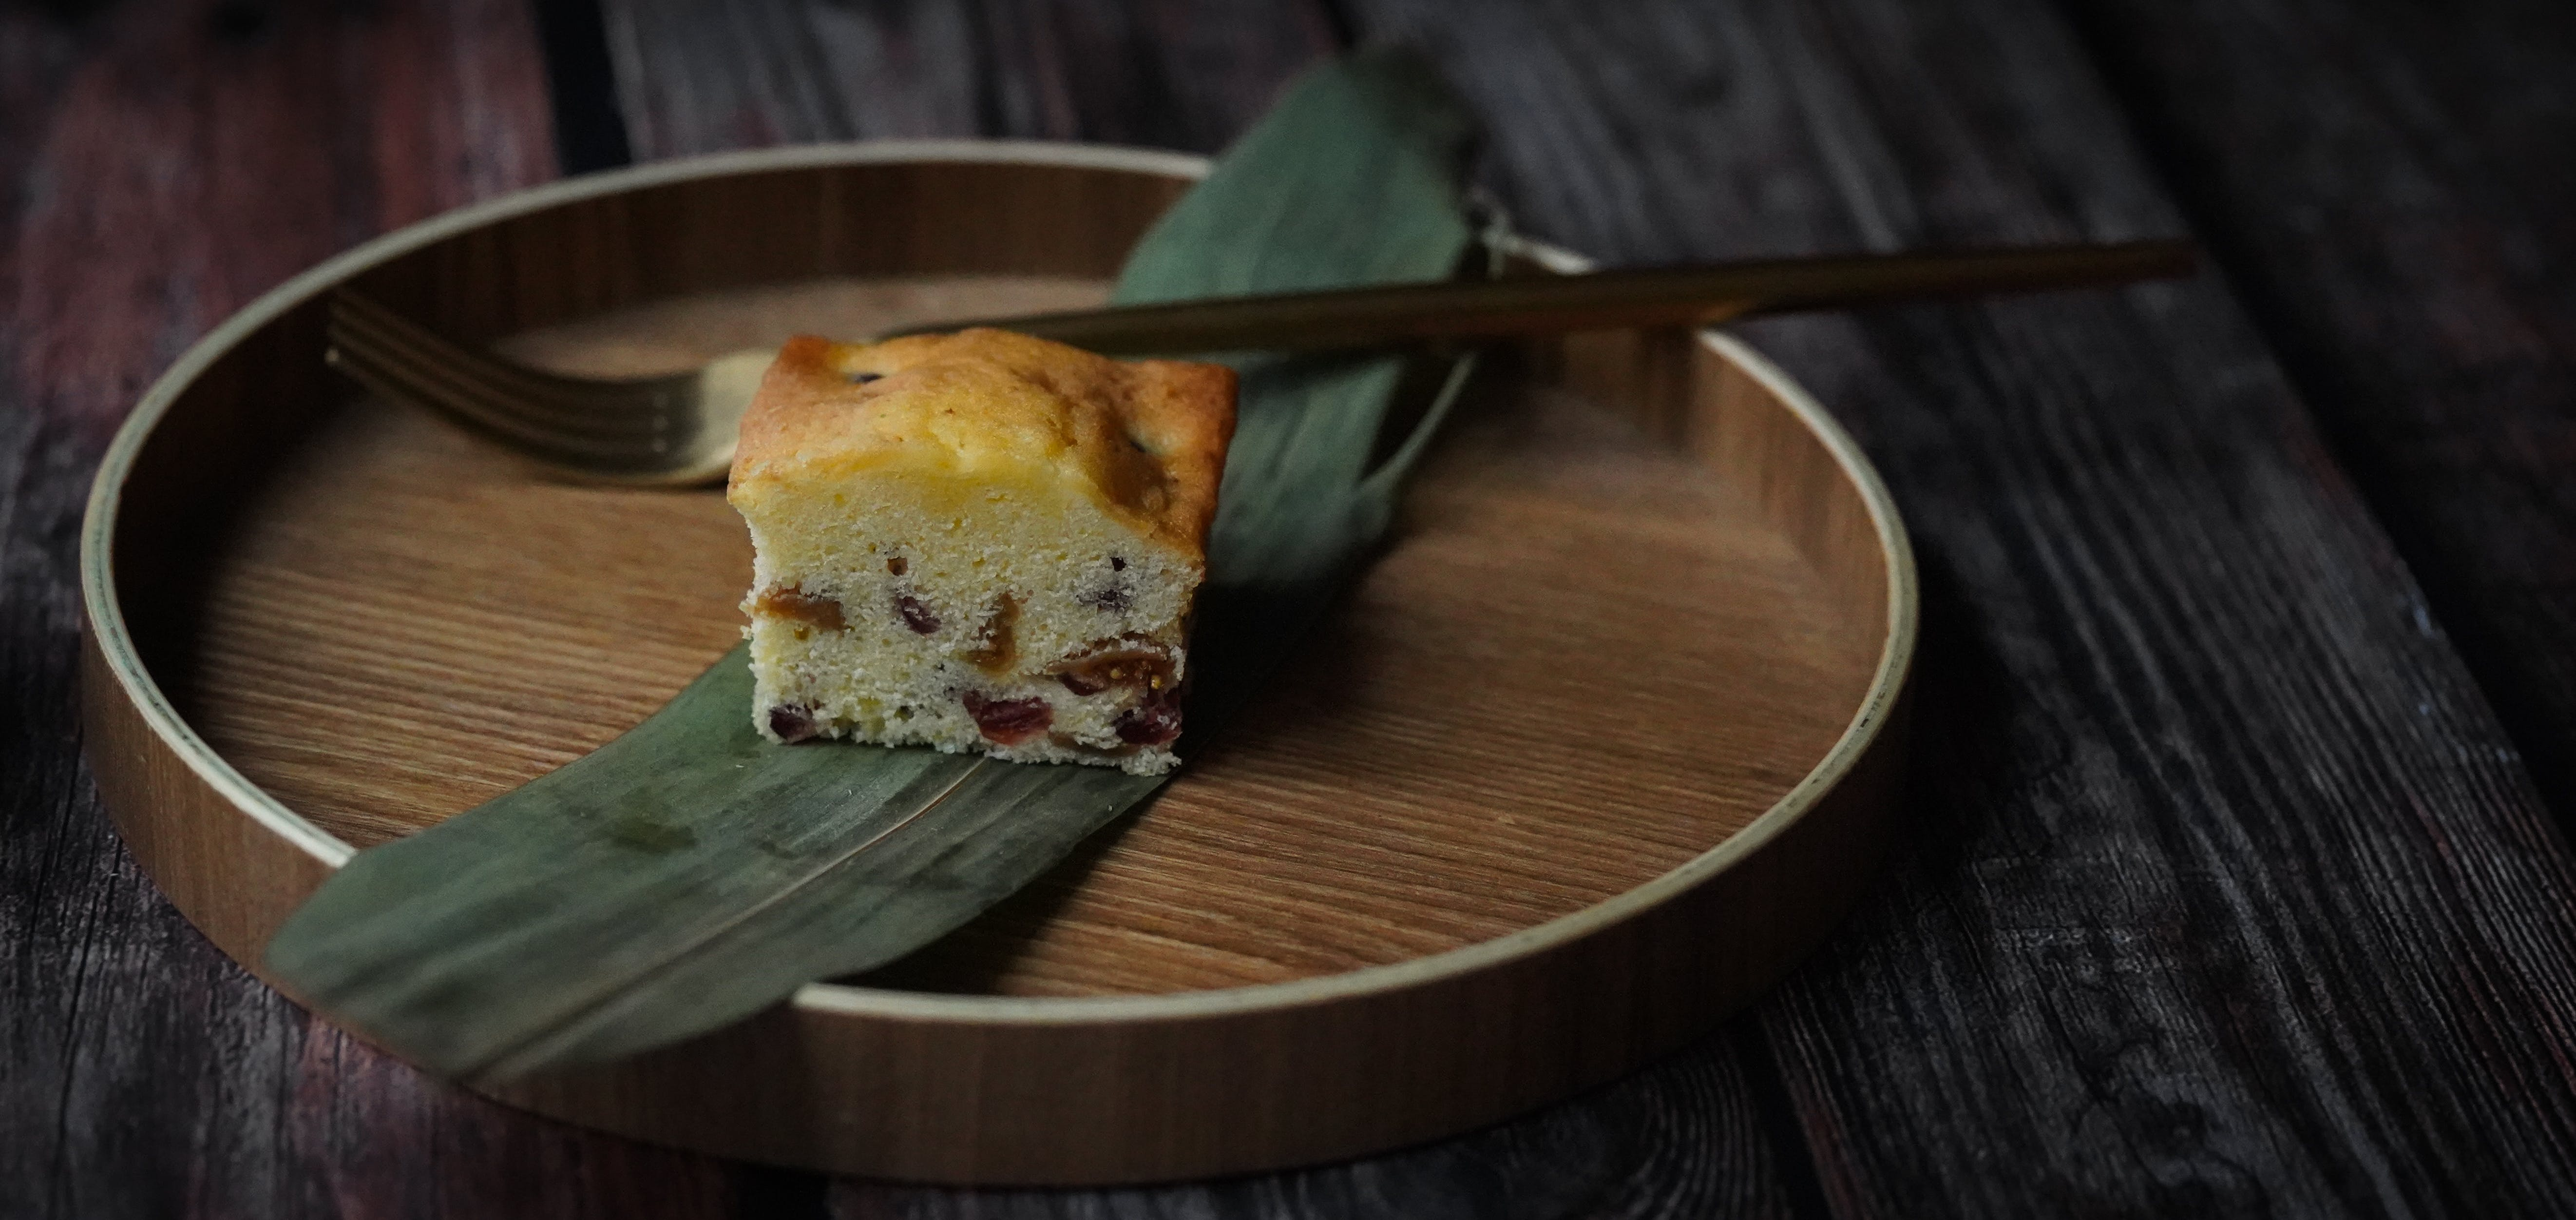 Sliced Baked Cake on Round Brown Plate